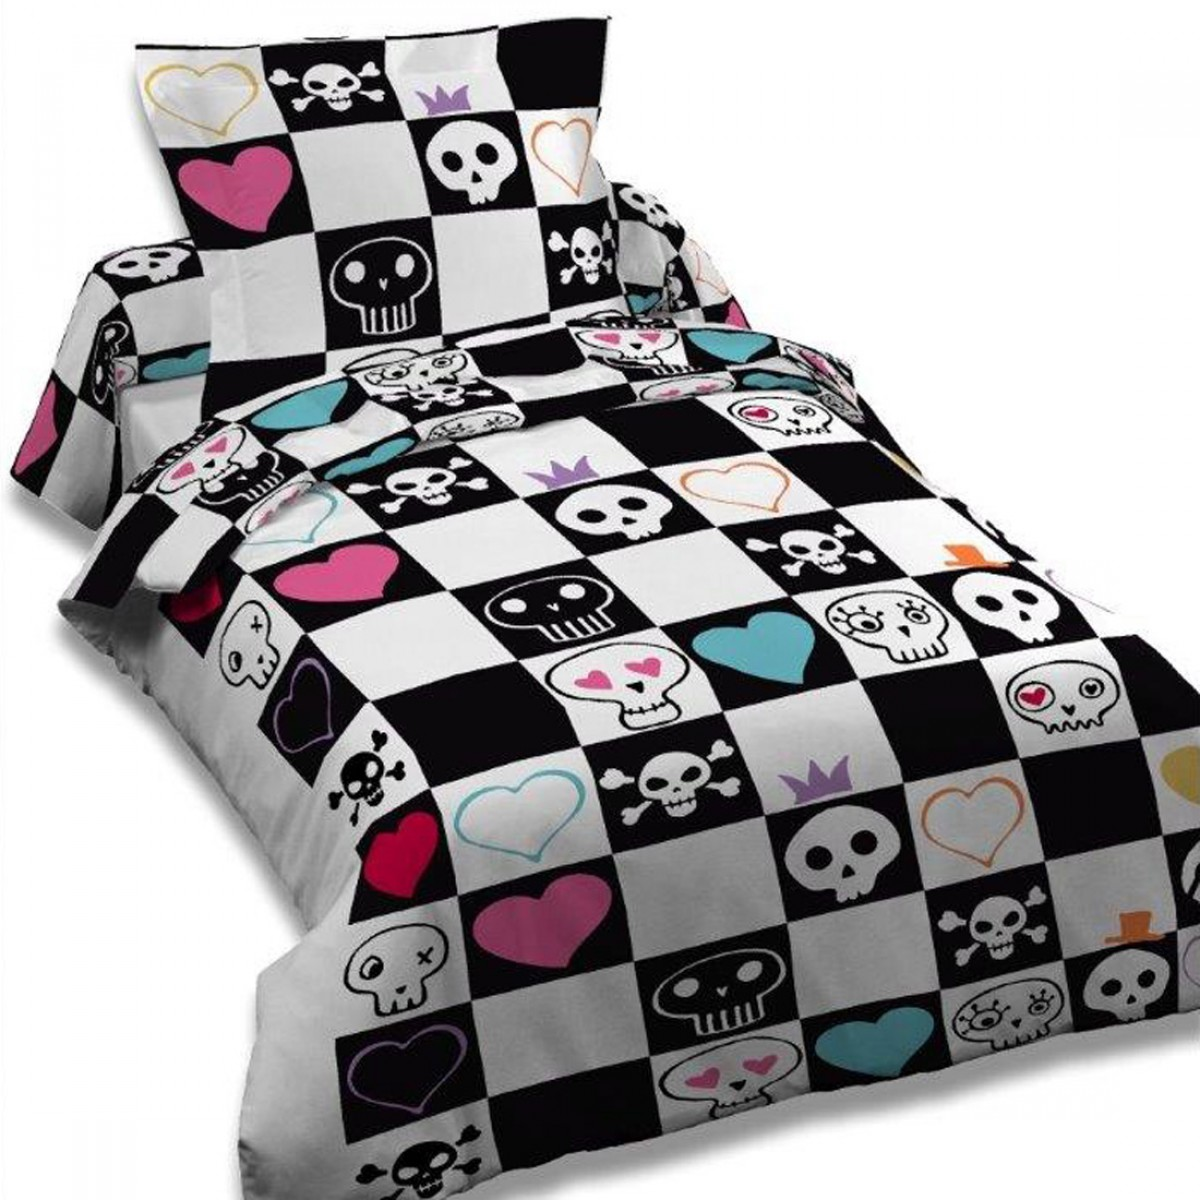 housse de couette 140x200 skully in bed les douces nuits. Black Bedroom Furniture Sets. Home Design Ideas